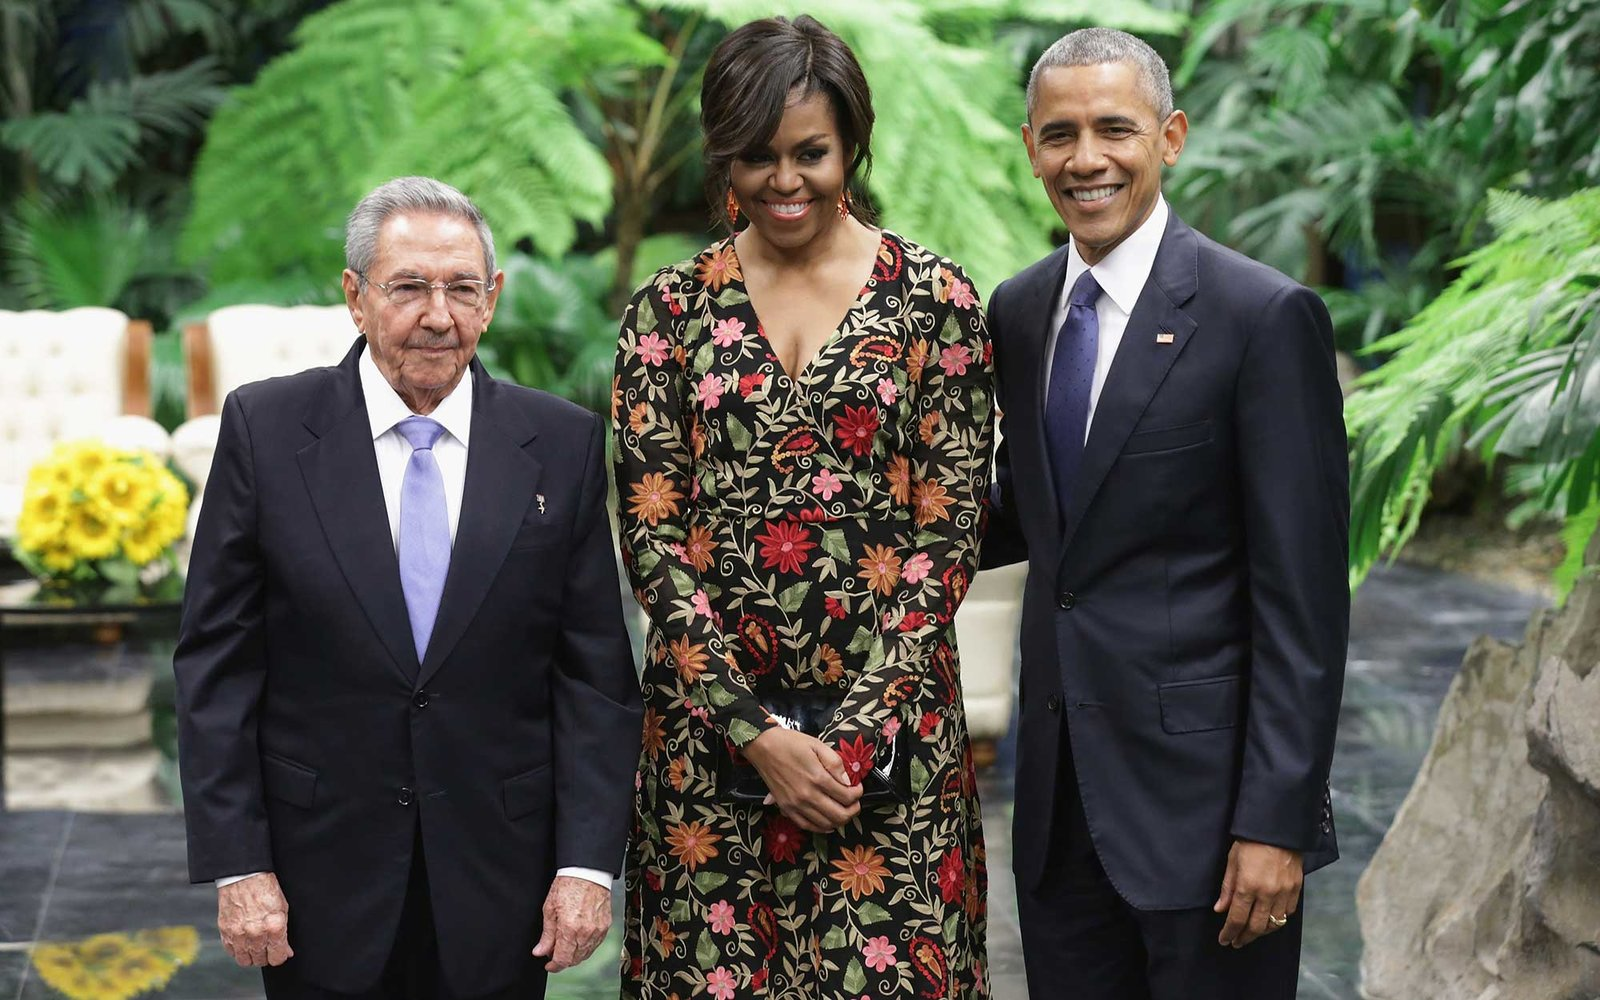 HAVANA, CUBA - MARCH 21:  Cuban President Raul Castro (L) poses for a photograph with U.S. first lady Michelle Obama and U.S. President Barack Obama before a state dinner at the Palace of the Revolution March 21, 2016 in Havana, Cuba. March 21, 2016 in Ha